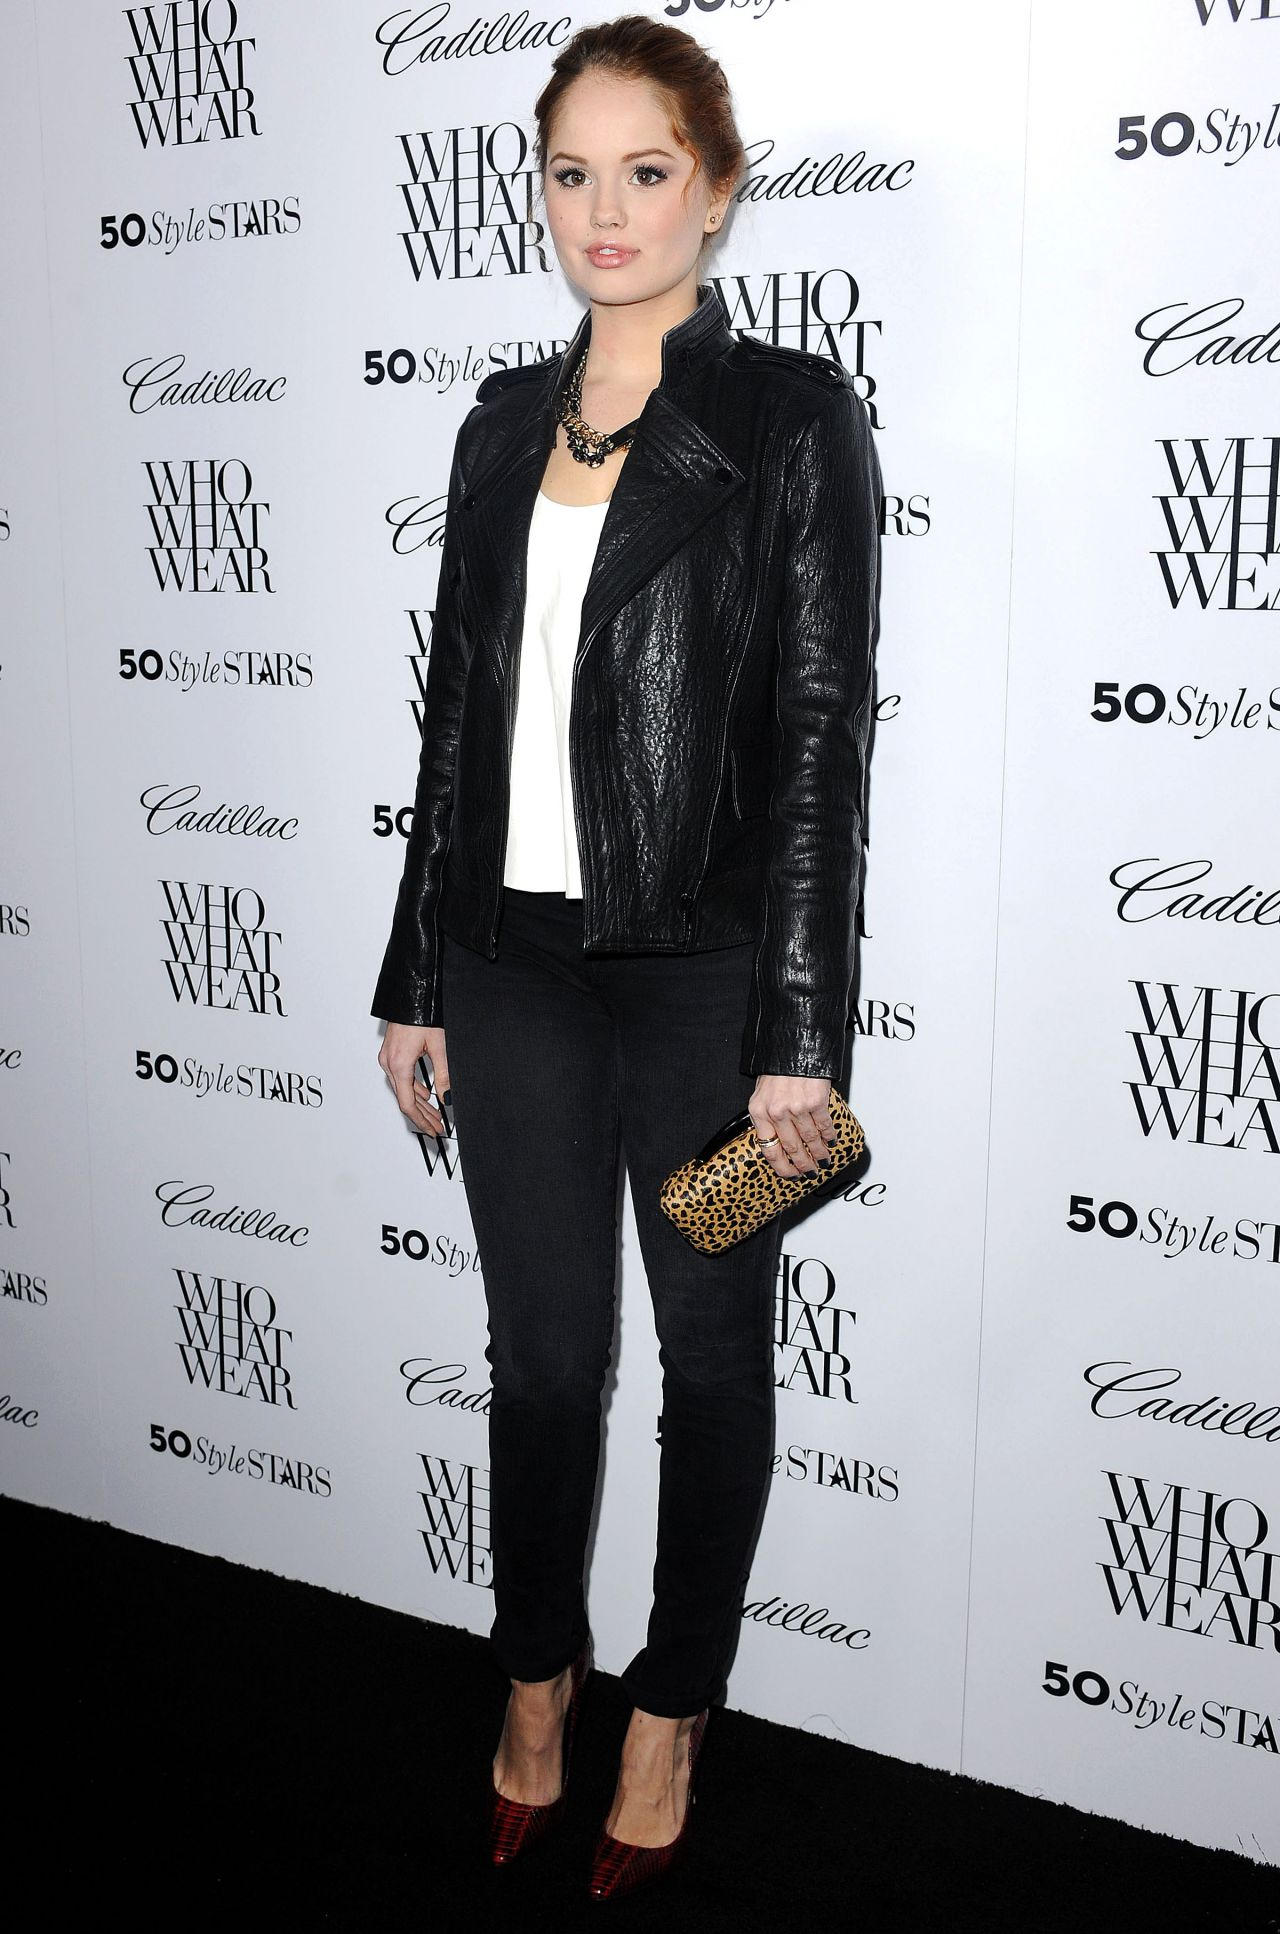 50 Most Fashionable Women Of 2013 Event